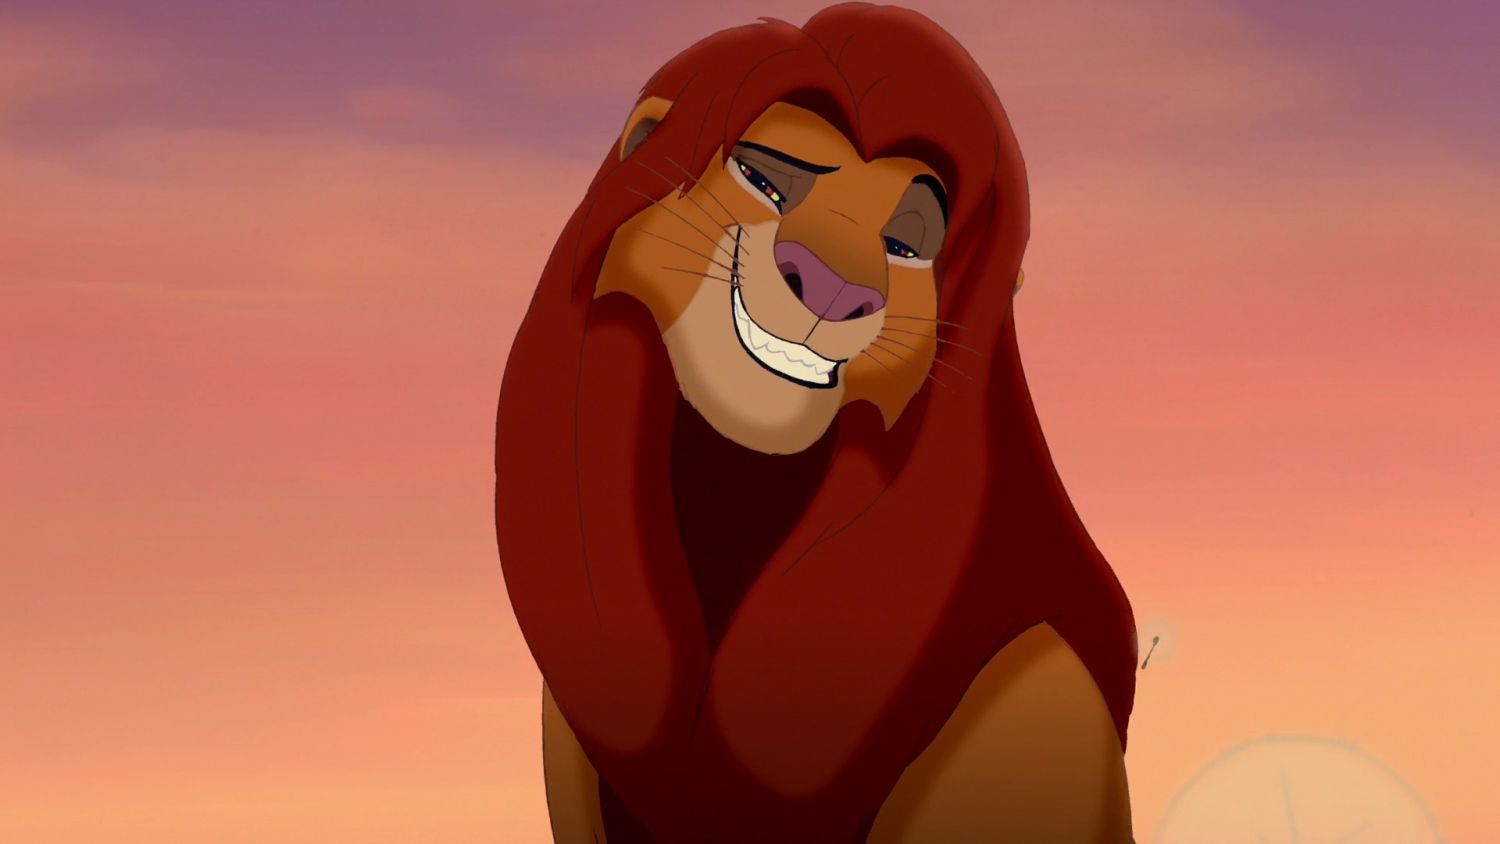 10 disney cartoon characters we were weirdly attracted to as kids